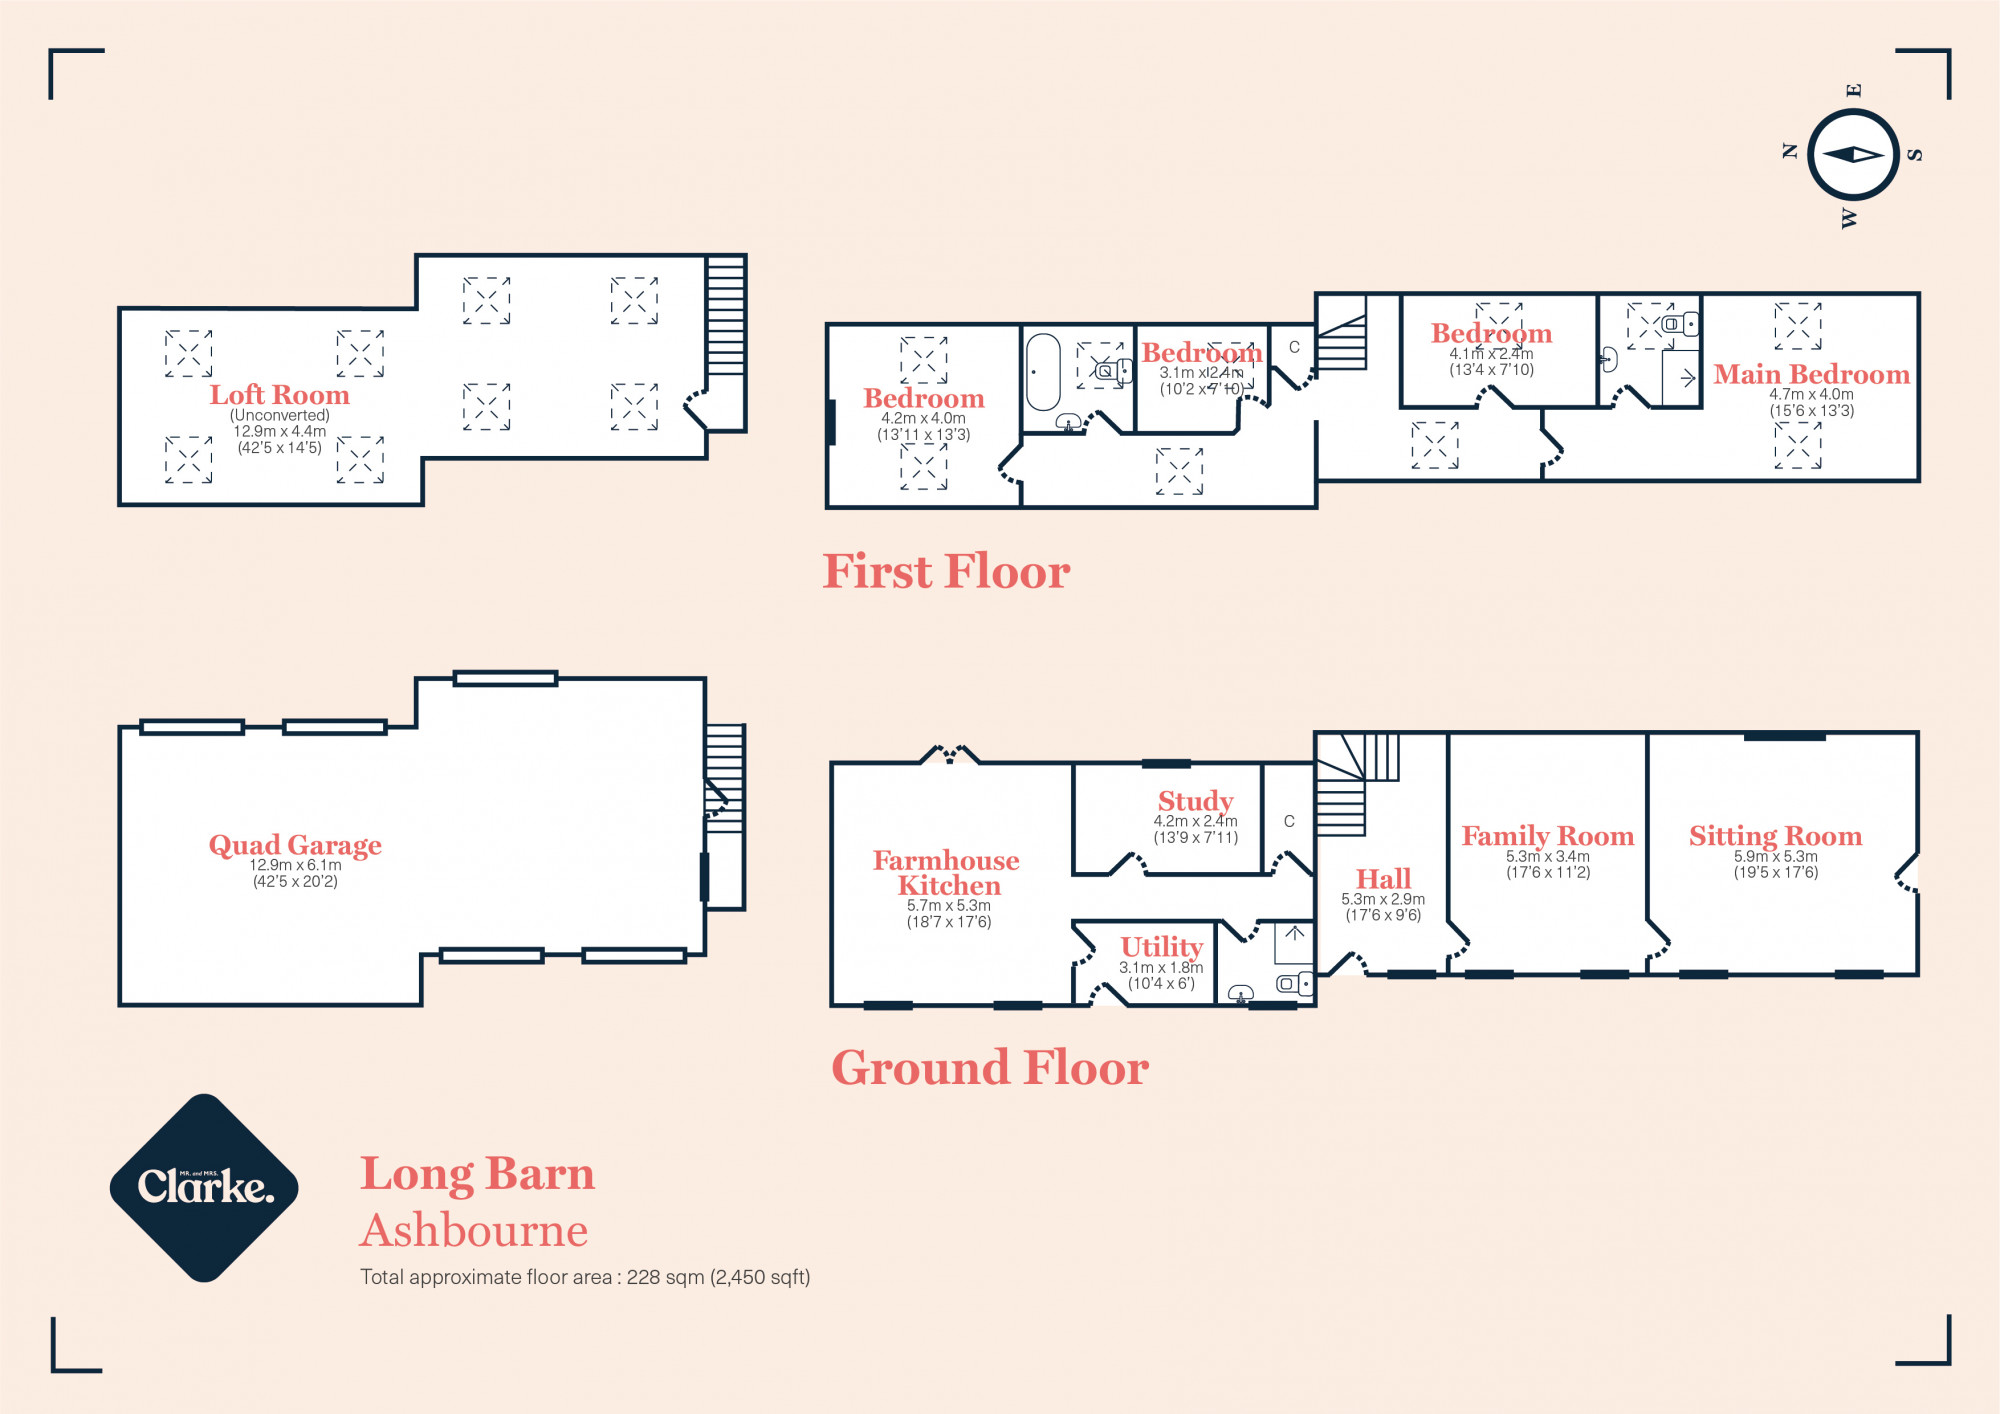 Long Barn, Ashbourne. Floorplan.